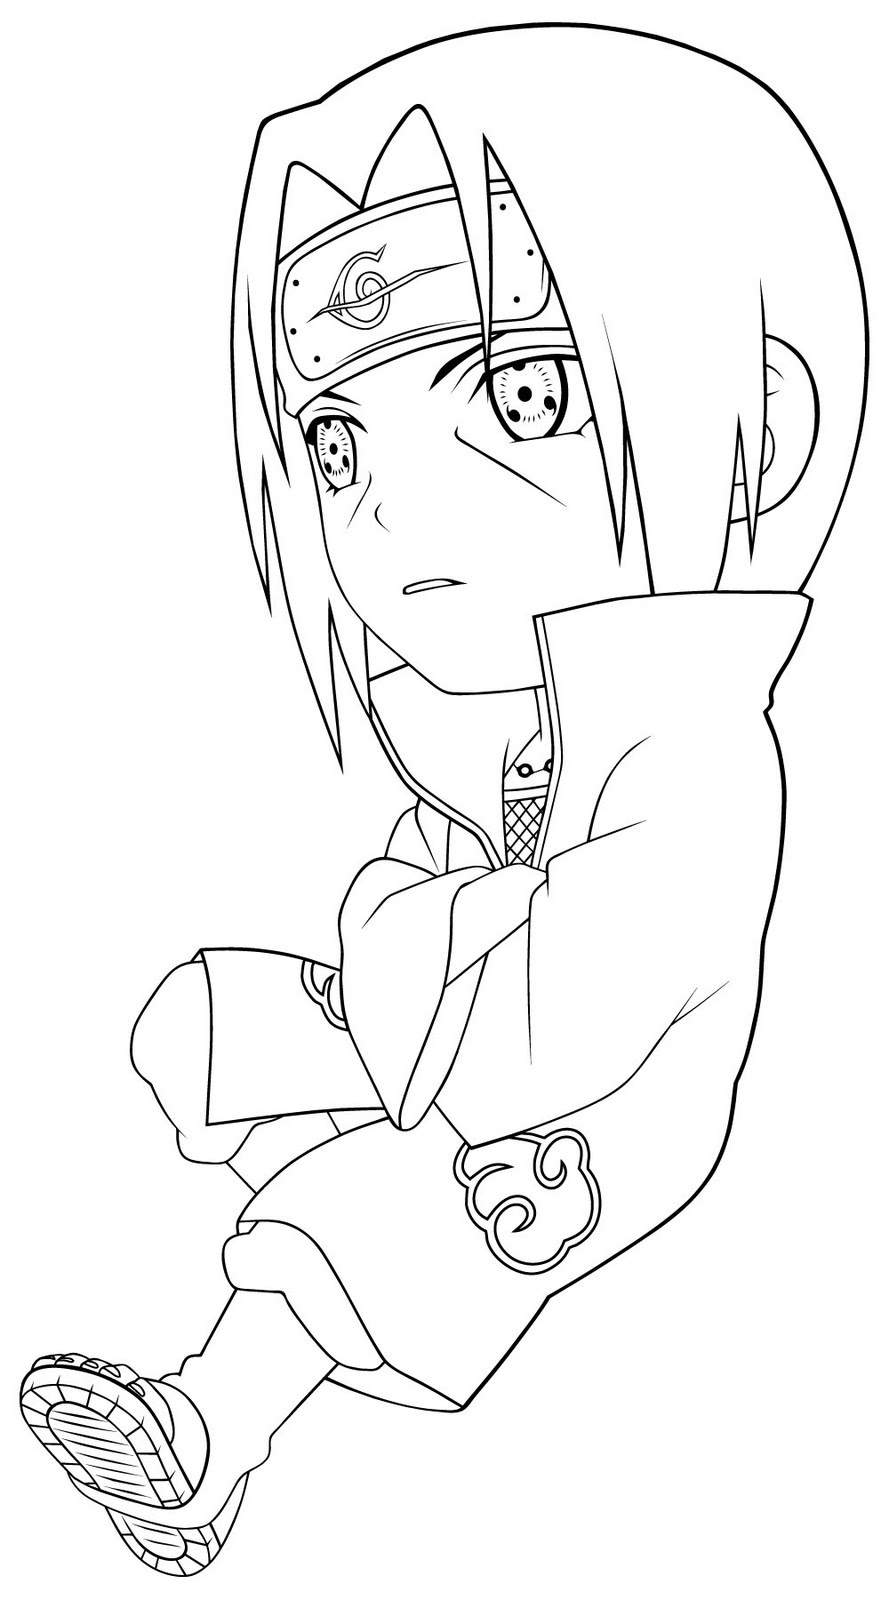 coloring pages of naruto - photo#23